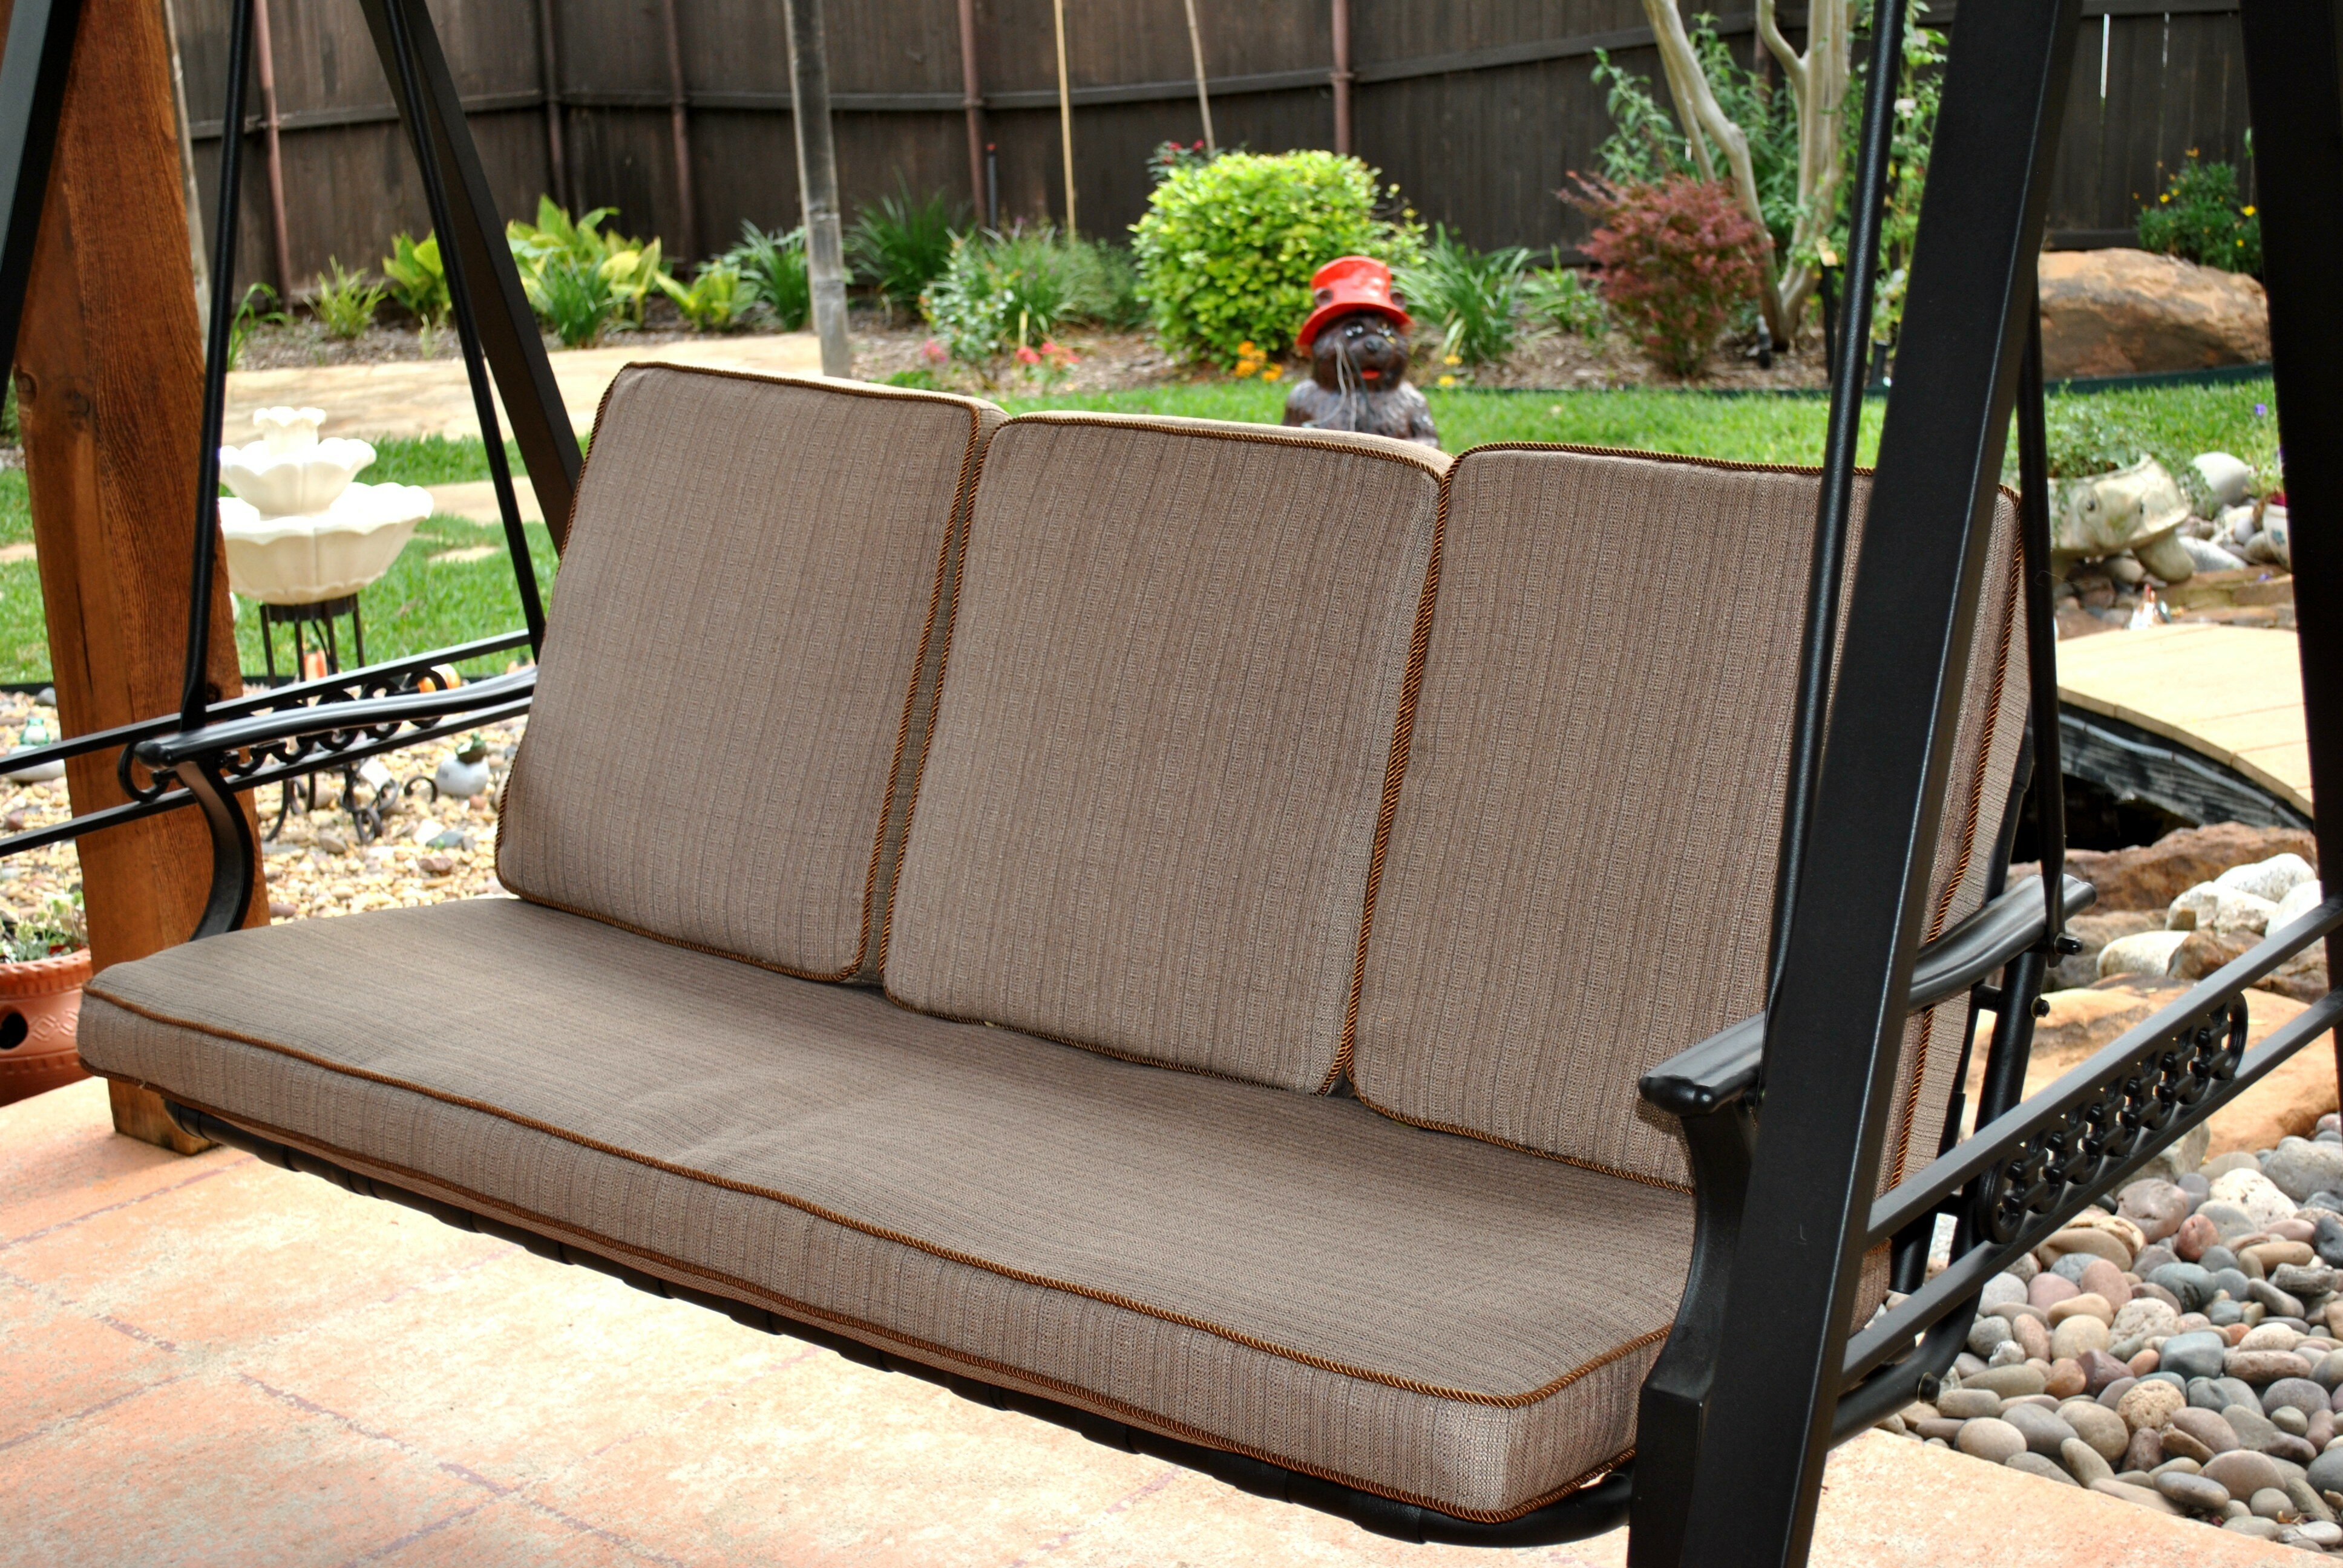 Lowes Outdoor Chairs | Lowes Lounge Chairs | Lowe Patio Furniture